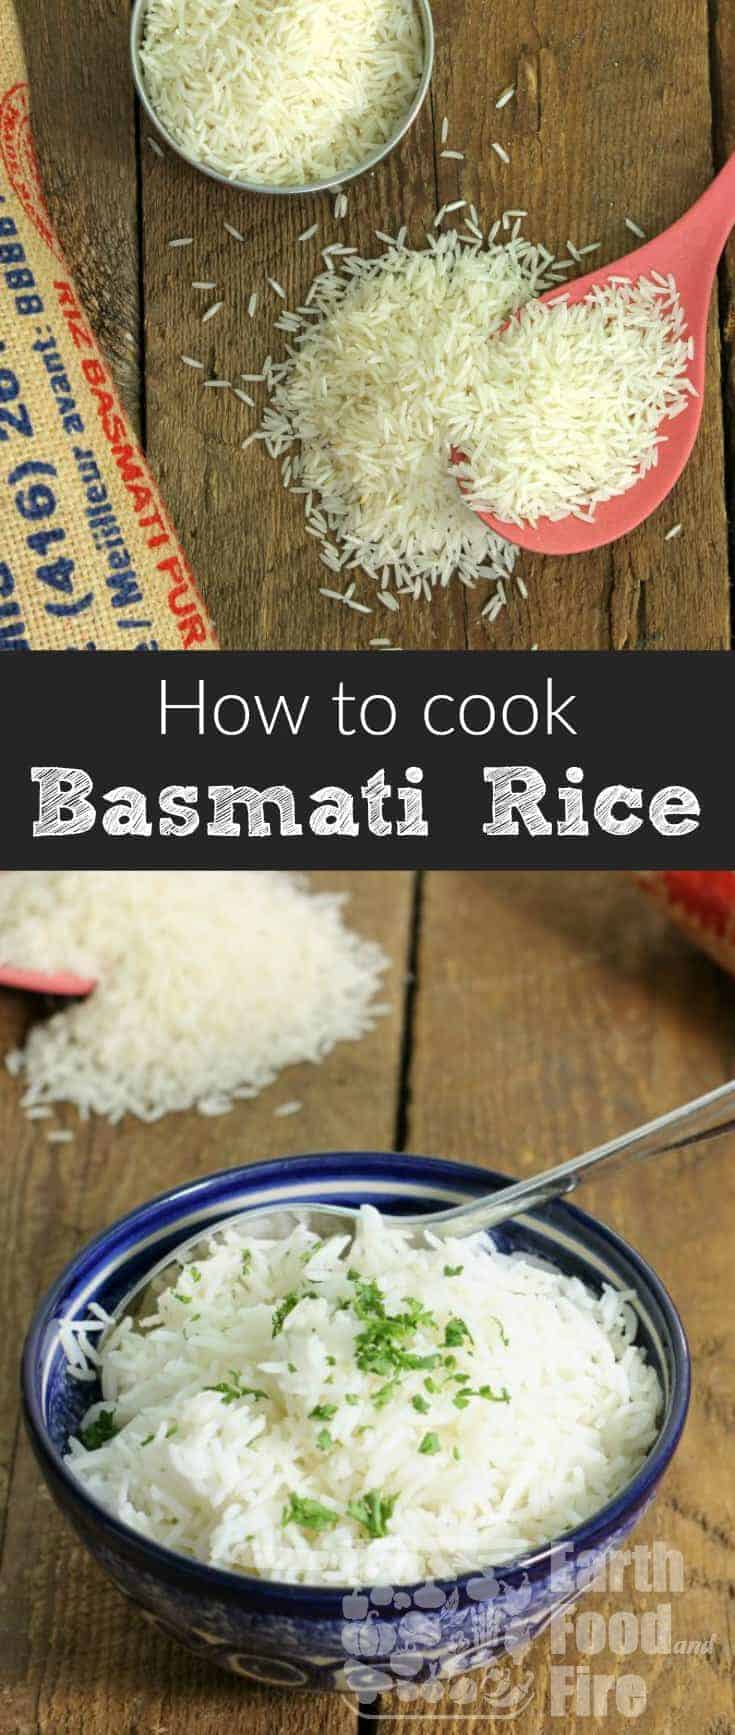 Cooking basmati rice at home is an essential skill everyone should know. Cook perfect and nutritious basmati rice at home consistently with this simple to follow guide! #basmati #rice #glutenfree #healthy #cookingskills #fromscratch